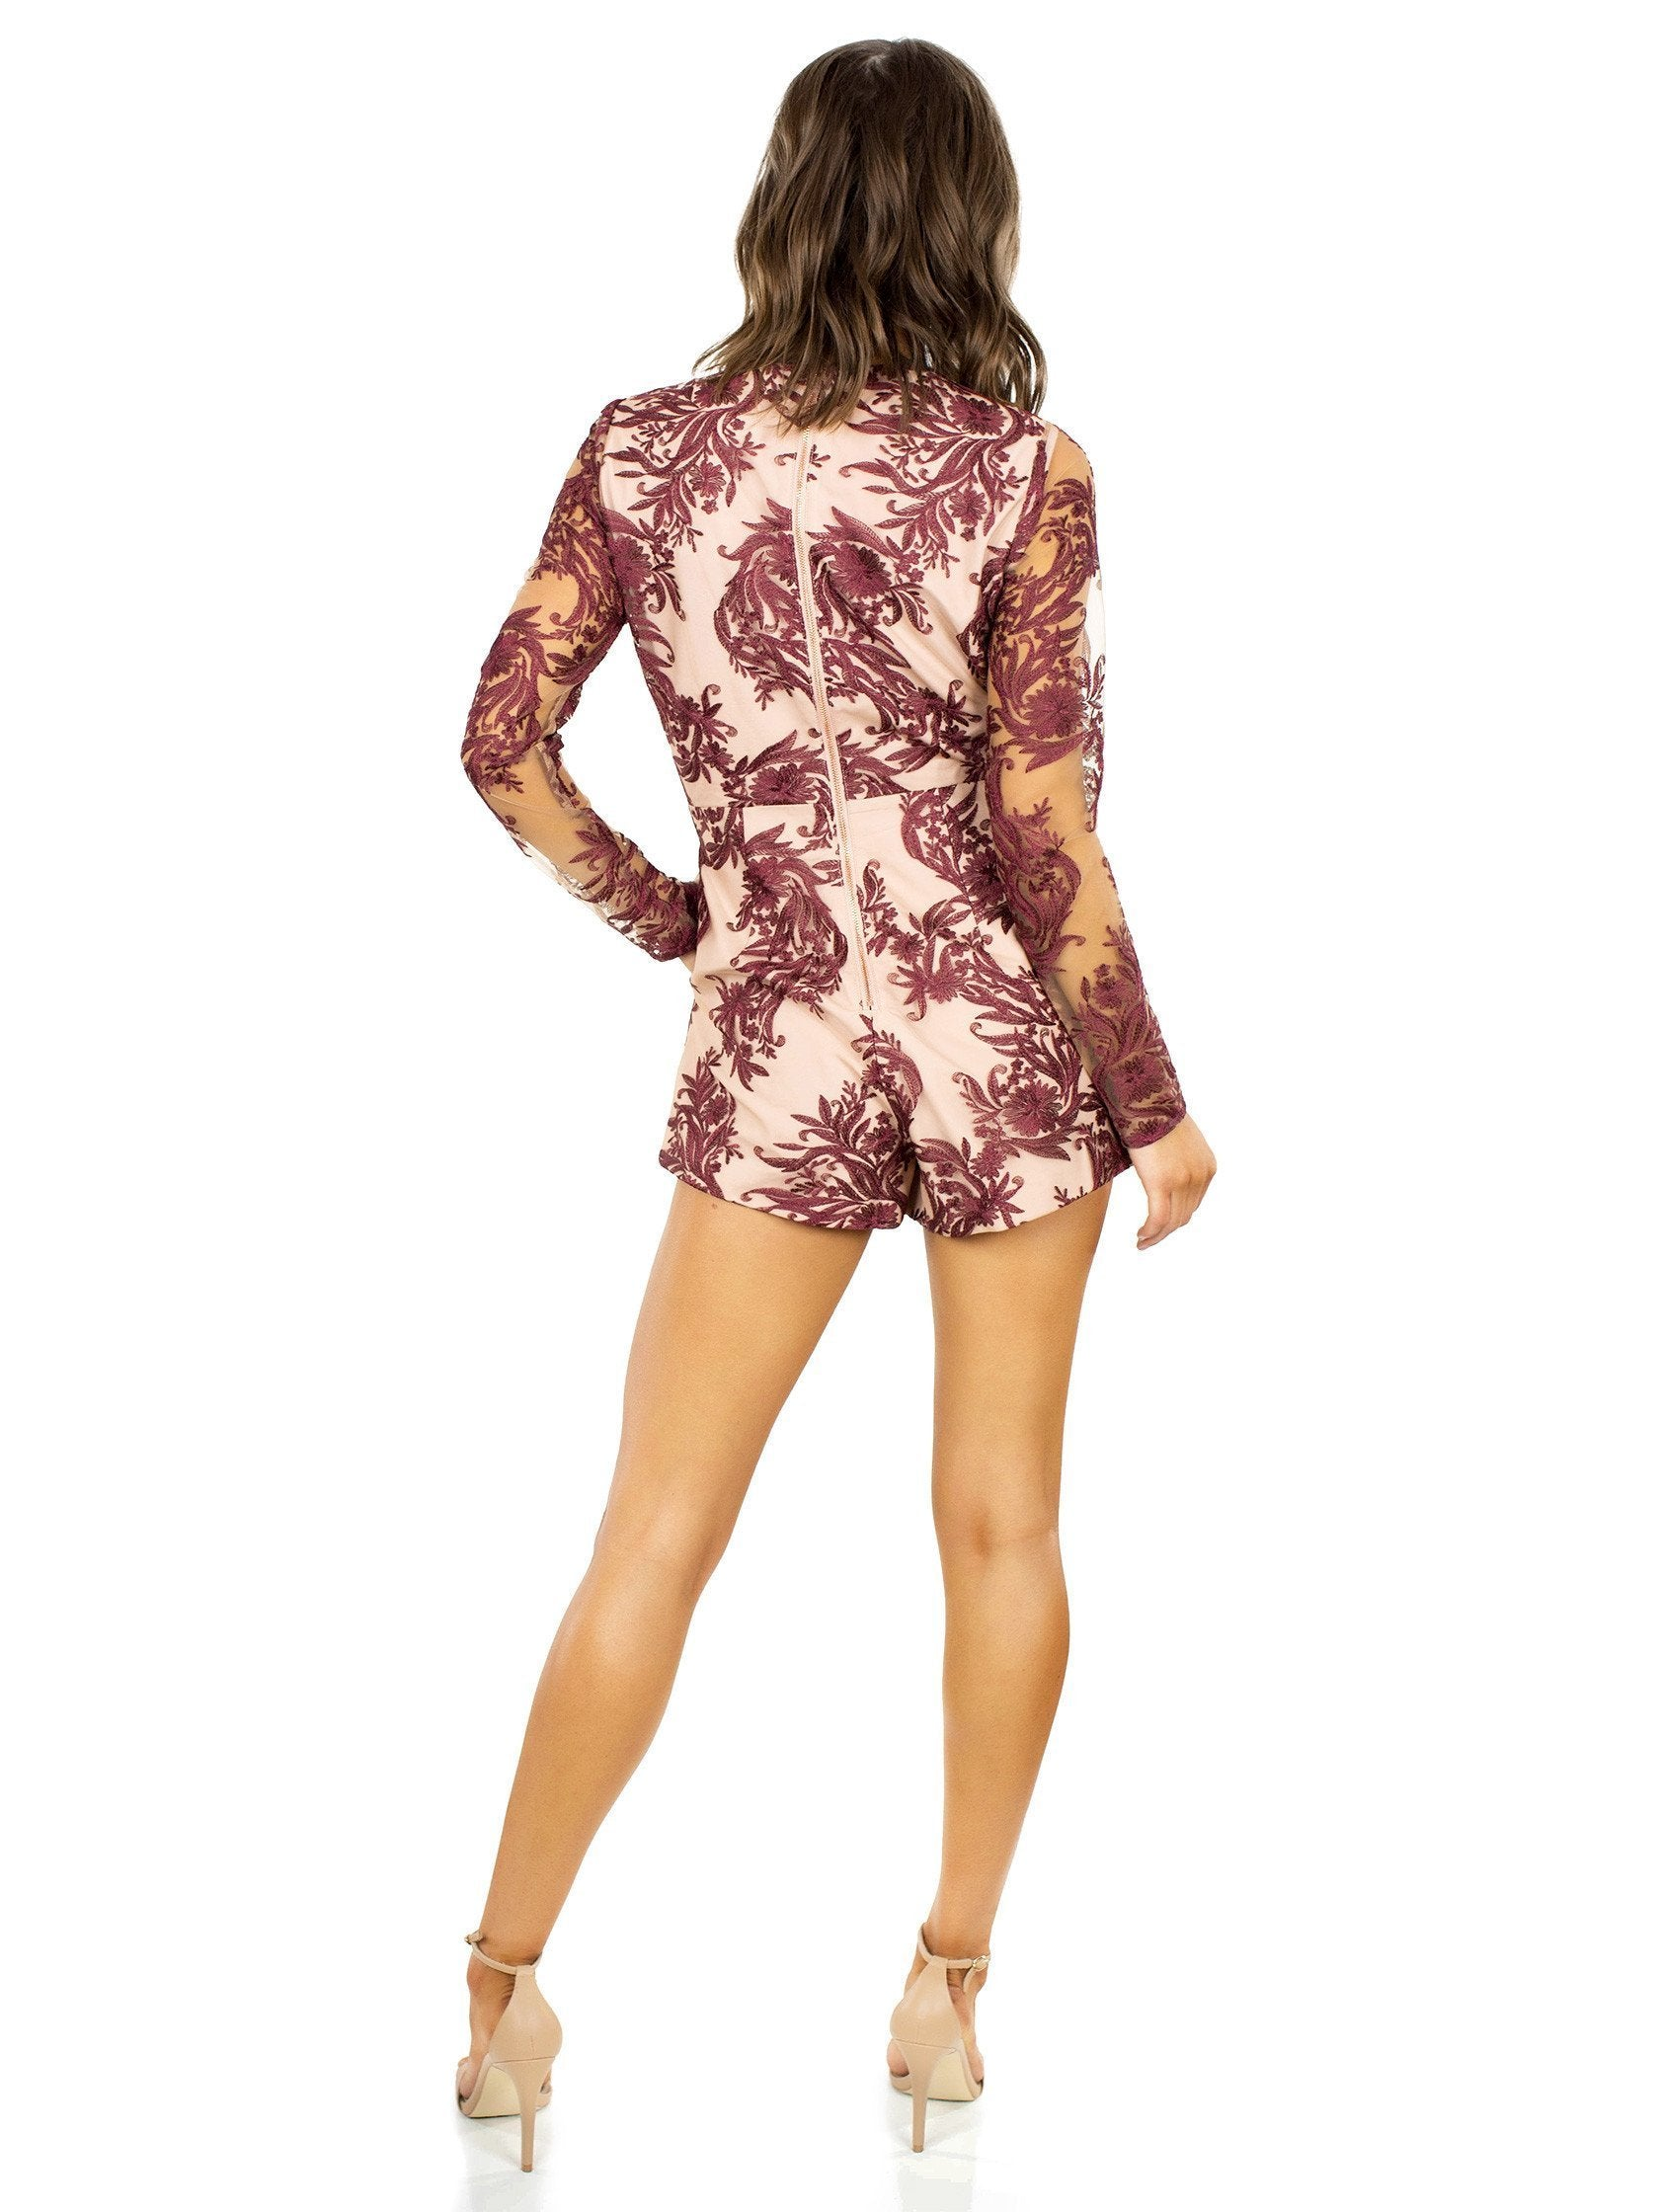 Women wearing a romper rental from STYLESTALKER called Mehndi Ls Romper